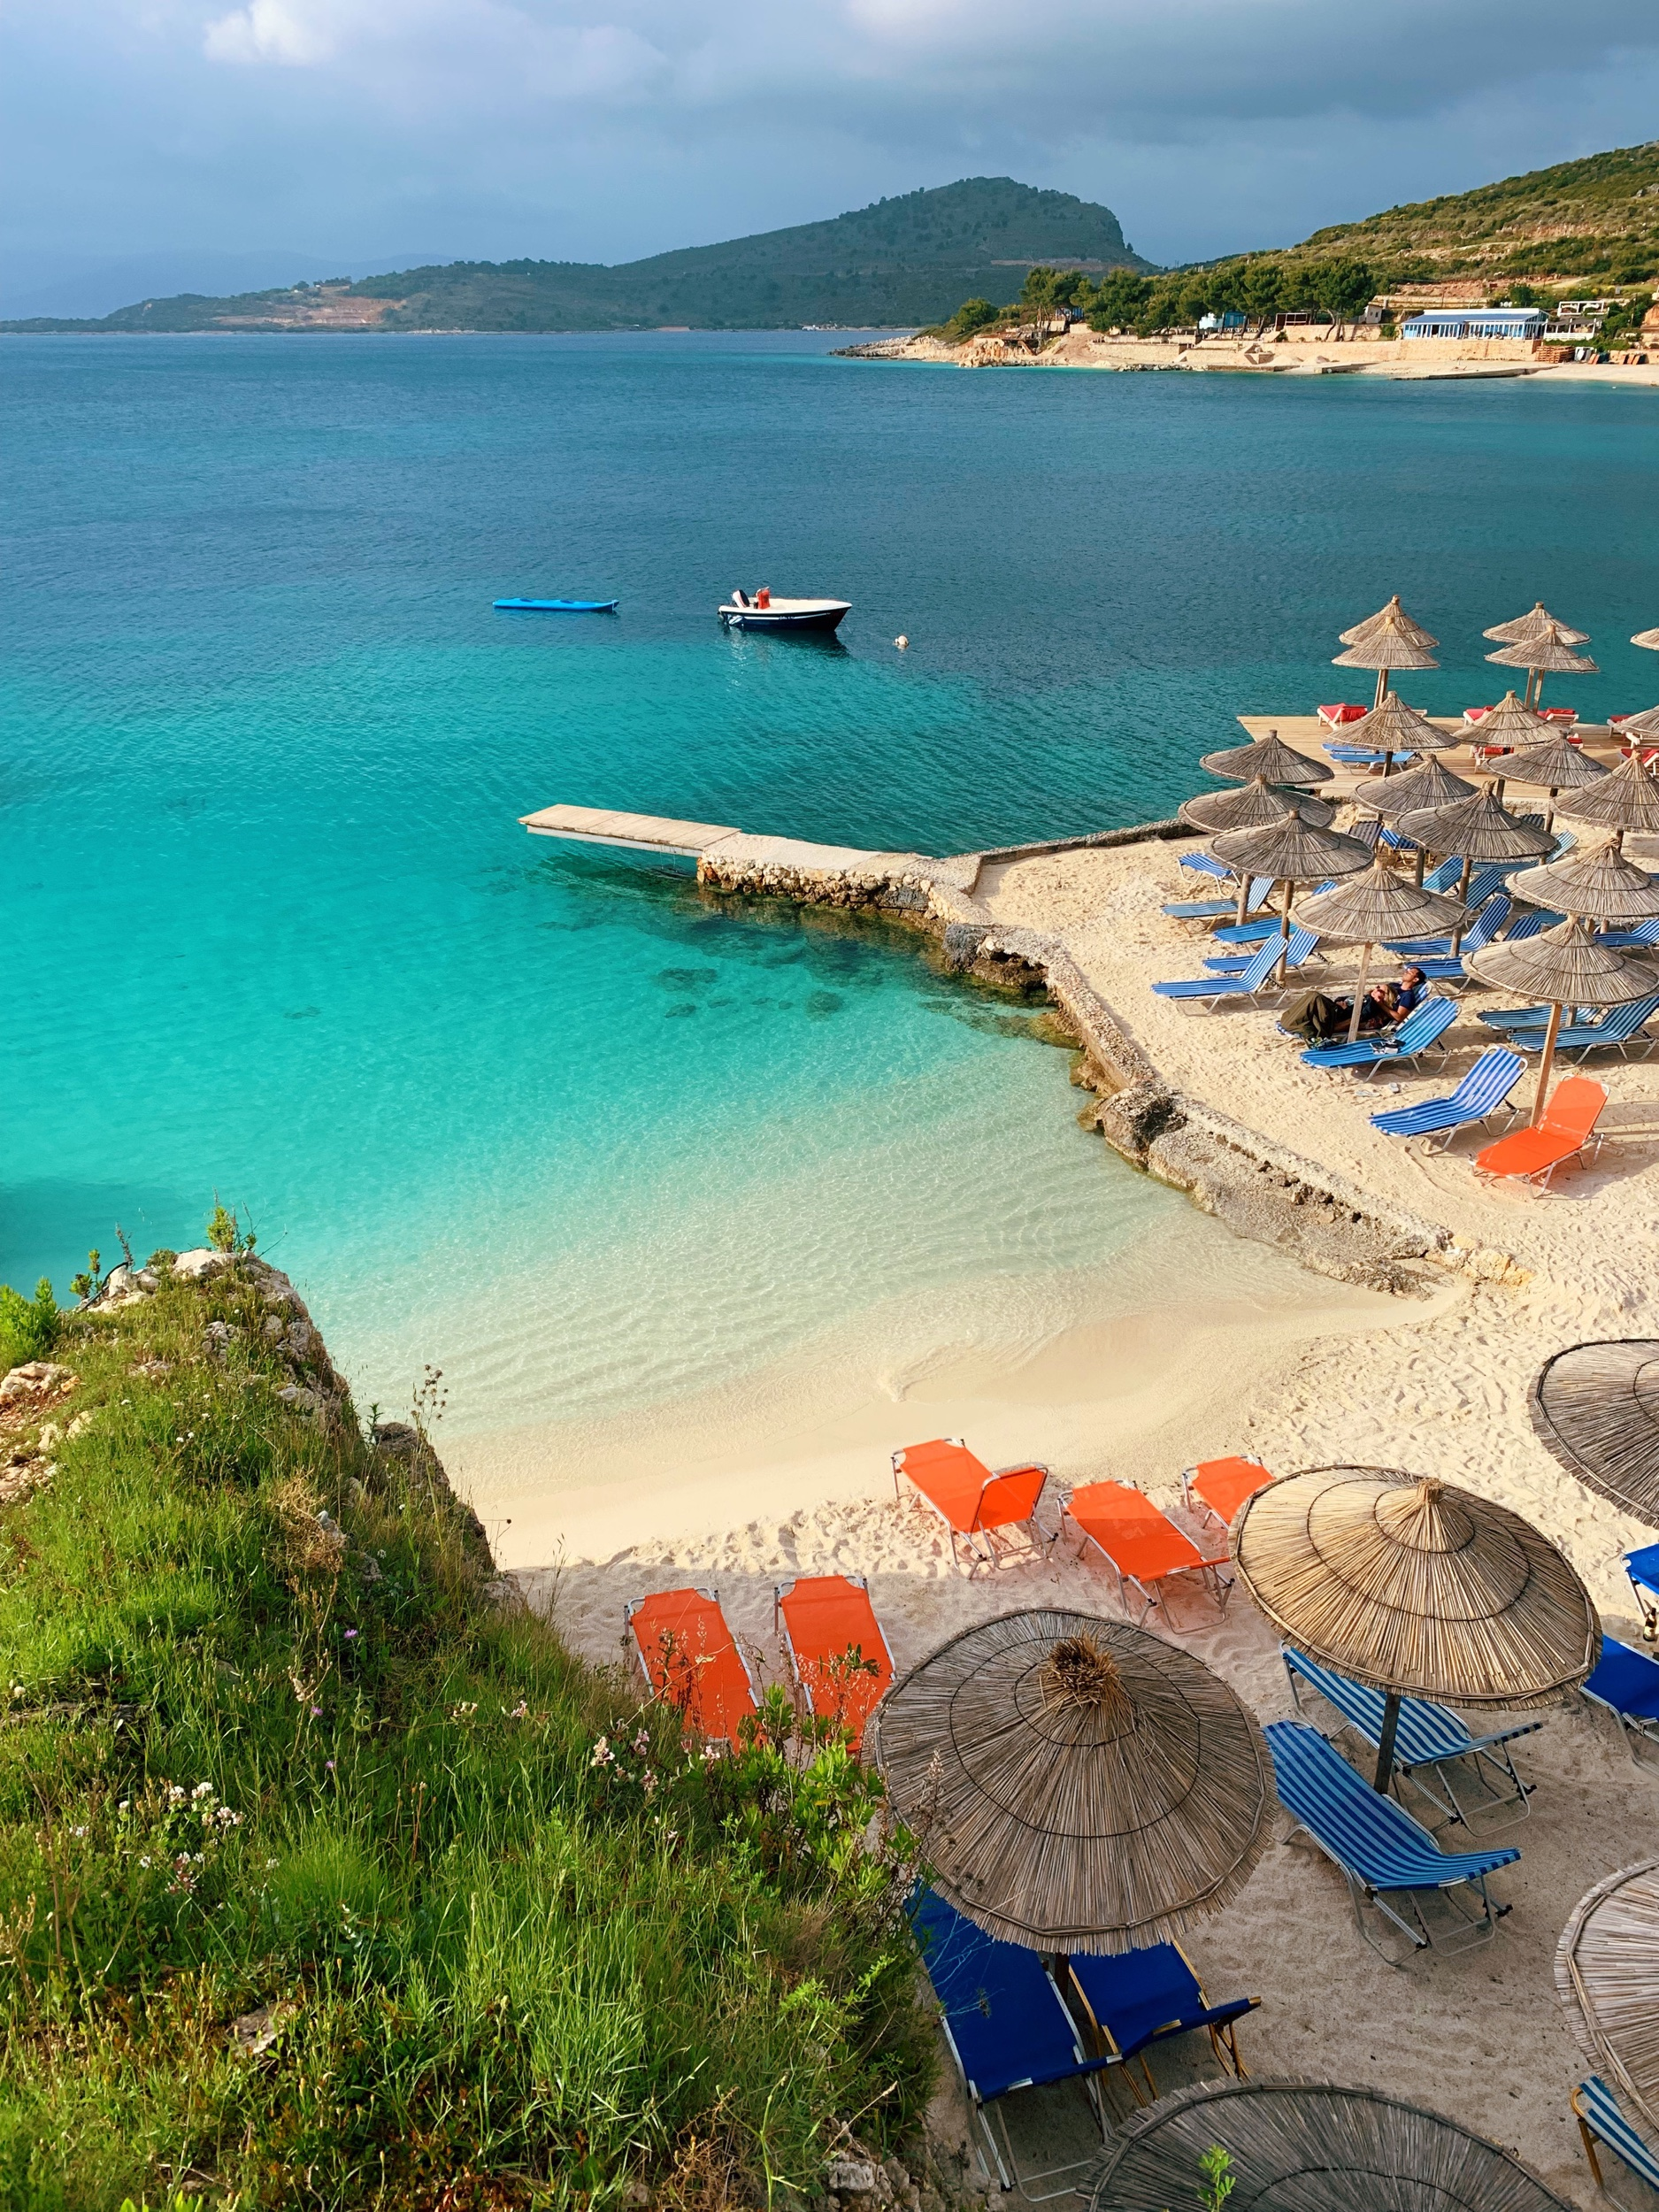 Yes, this is Albania. Ksamil beach to be exact.